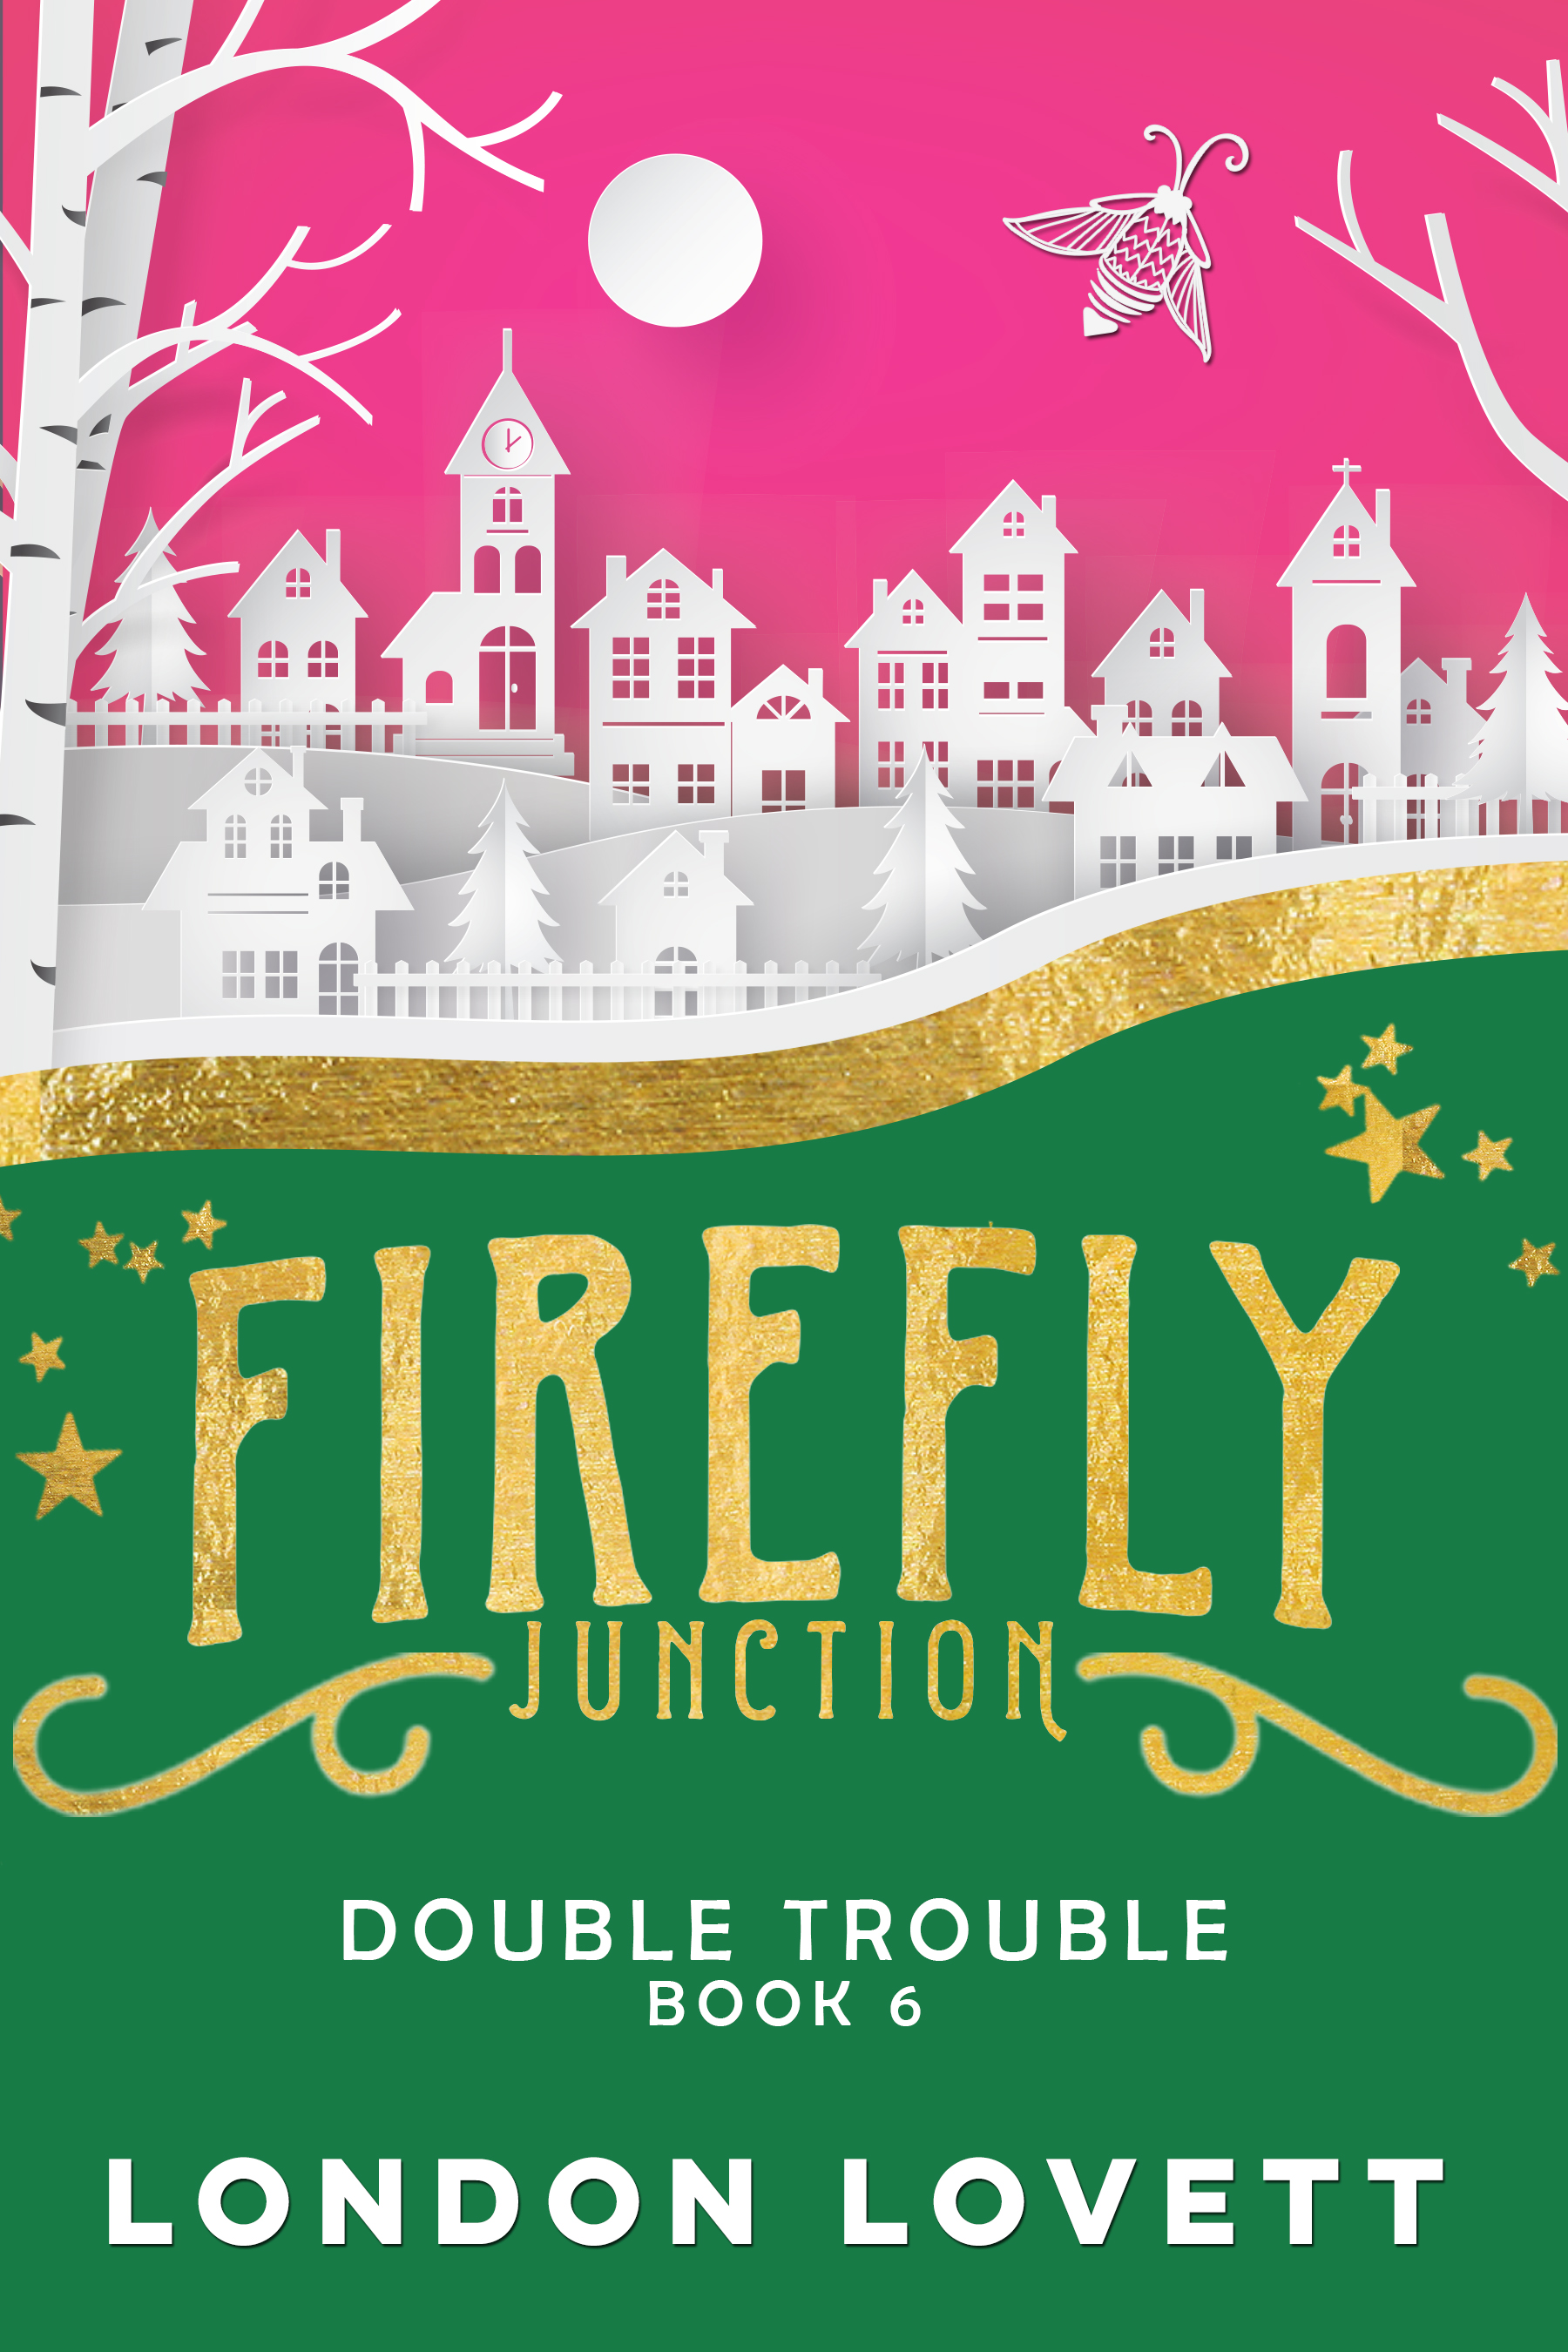 Double Trouble - Firefly Junction meets Port Danby as Lola and Lacey take a trip to the Cider Ridge Inn in Double Trouble.Sunni Taylor is finally going to meet Lola Button, the quirky antique dealer who sold her some rather unusual old photos of Cider Ridge Inn. When Lola arrives with her best friend, Lacey Pinkerton, Sunni and Lacey find they have a lot in common.When Sunni's friend, Raine, is invited to attend a wiccan ceremony celebrating the Autumnal Equinox, the four women decide it would be fun and find themselves traipsing through the forest to attend the Mabon Apple Harvest Rite. Amidst the incense and incantations, a shocking discovery is made. A dead body. Sunni and her new sleuthing partner, Lacey, immediately jump into action. The two women are ready to pool their skills and find the killer.Releasing everywhere August 12thPre-order: Amazon Nook Kobo